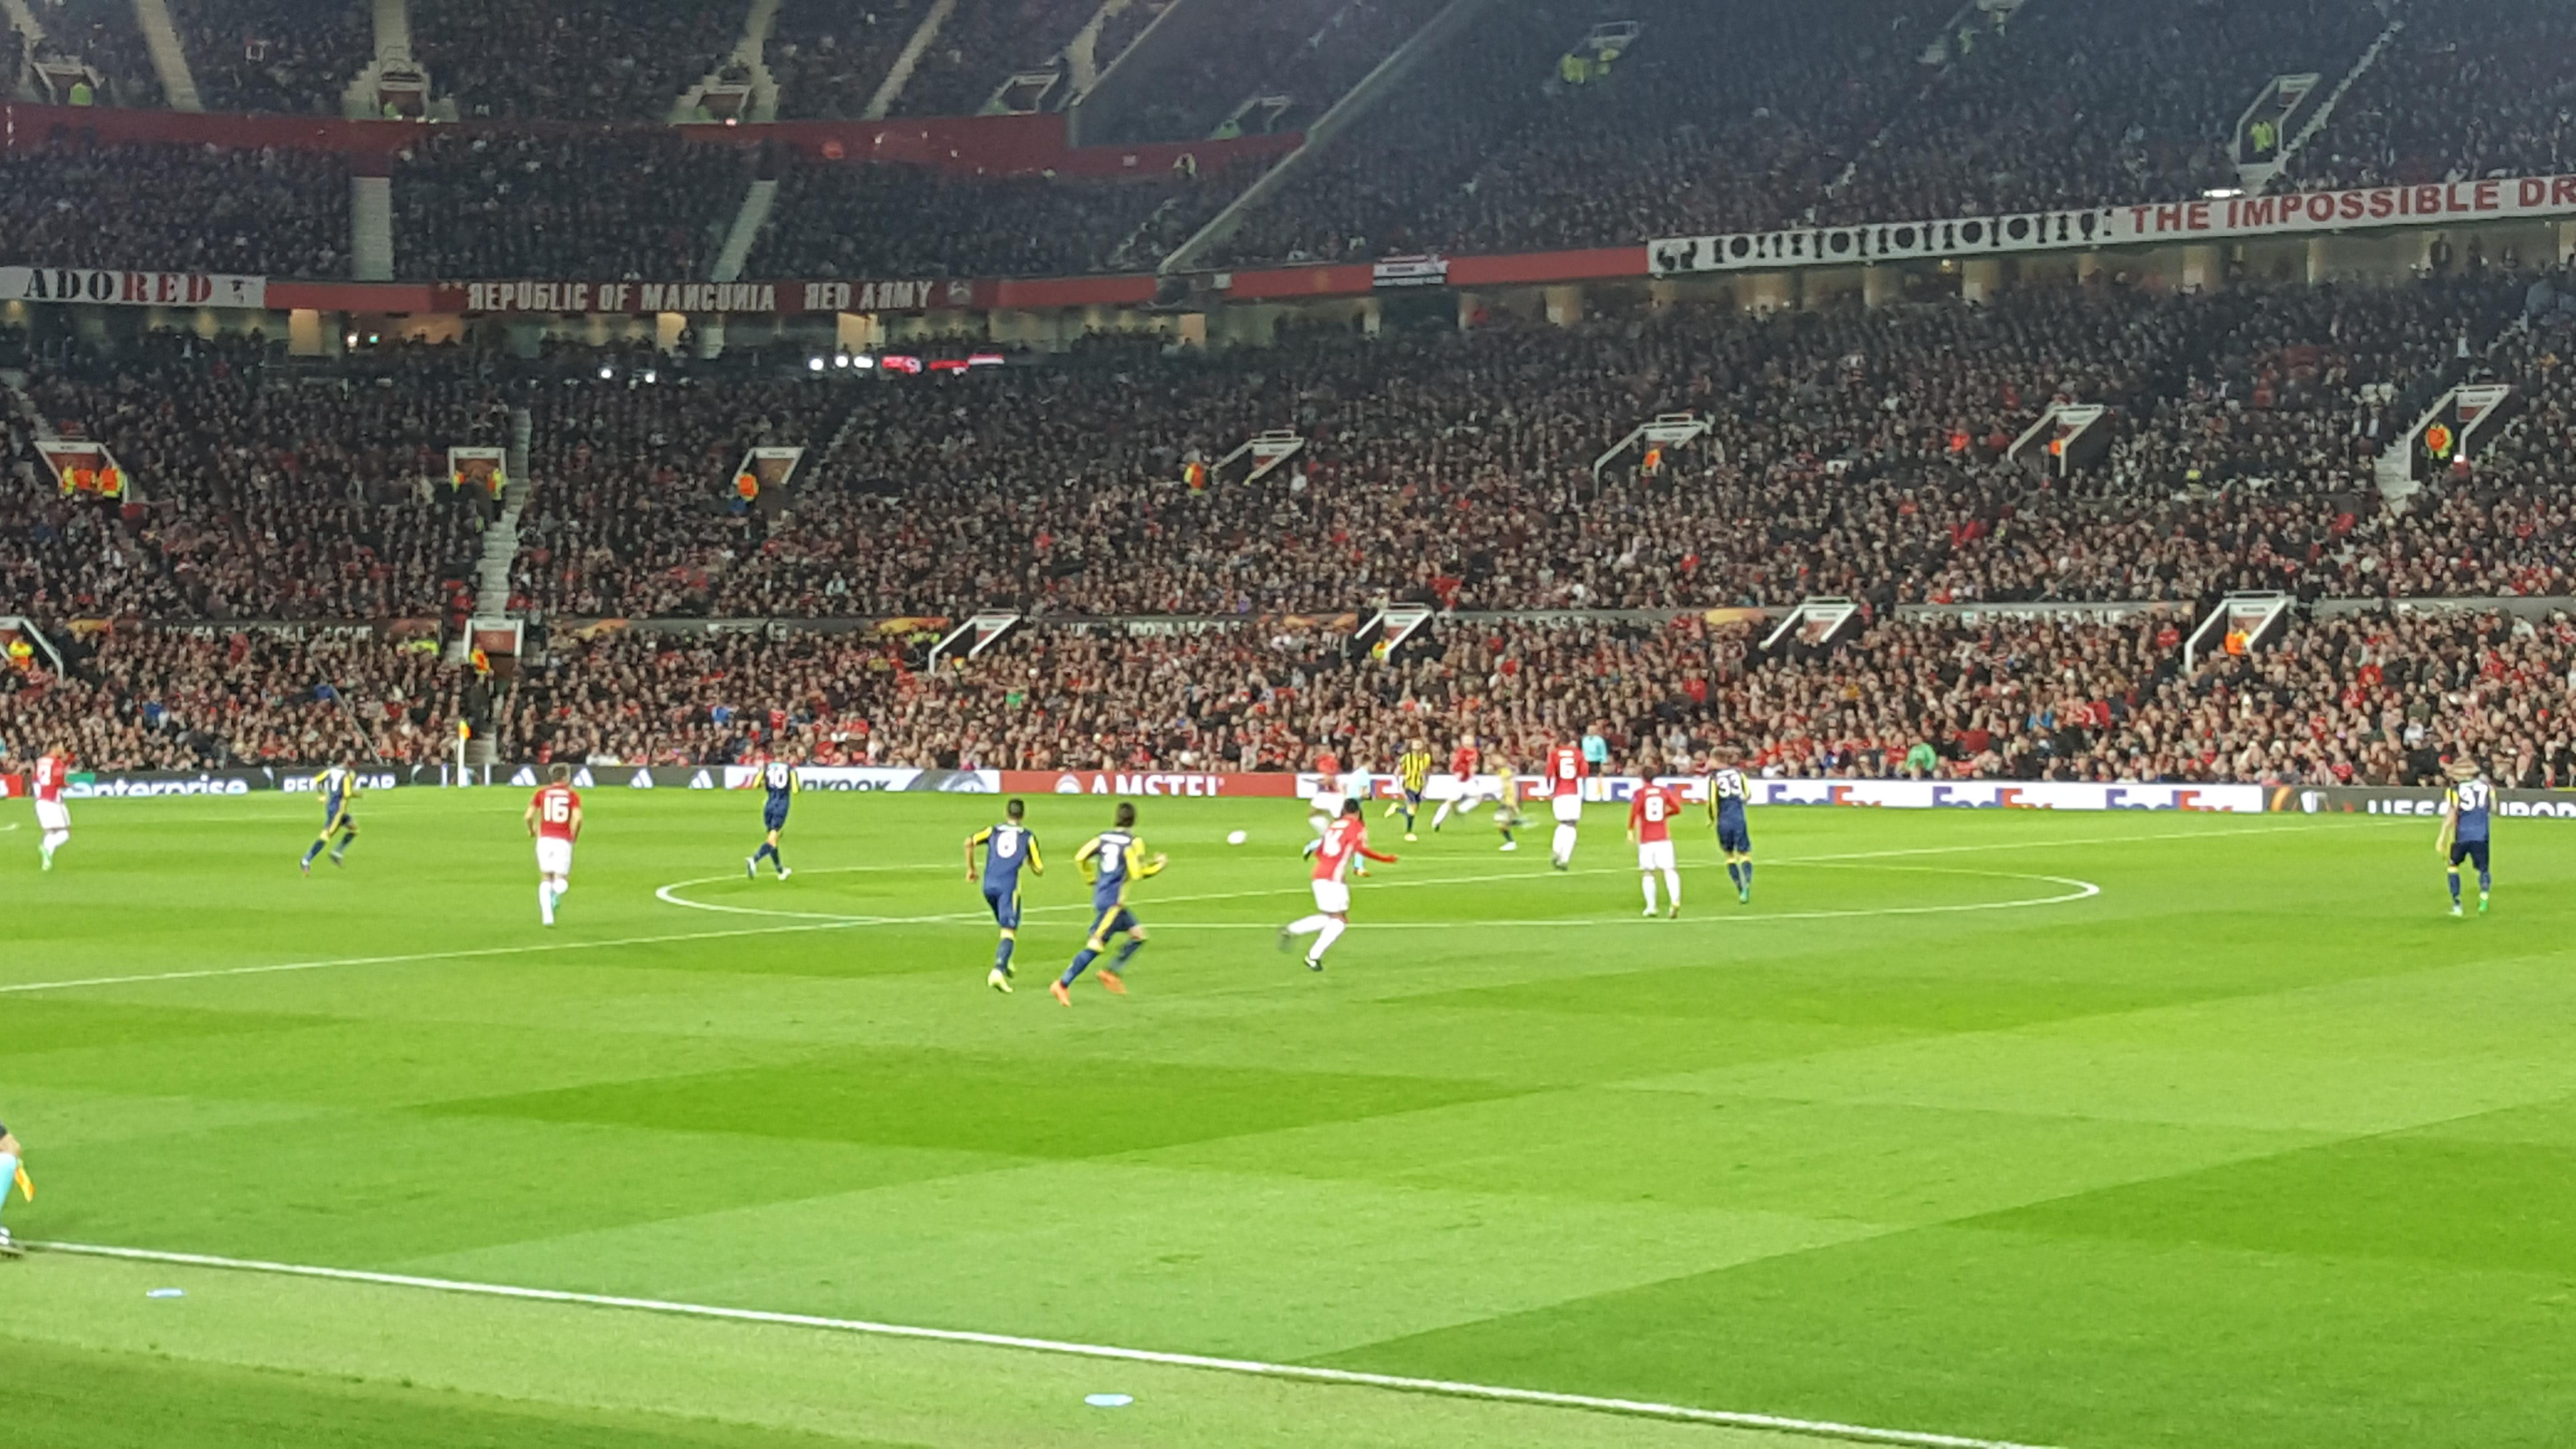 Old Trafford Section Sth127 Row 4 Seat 53